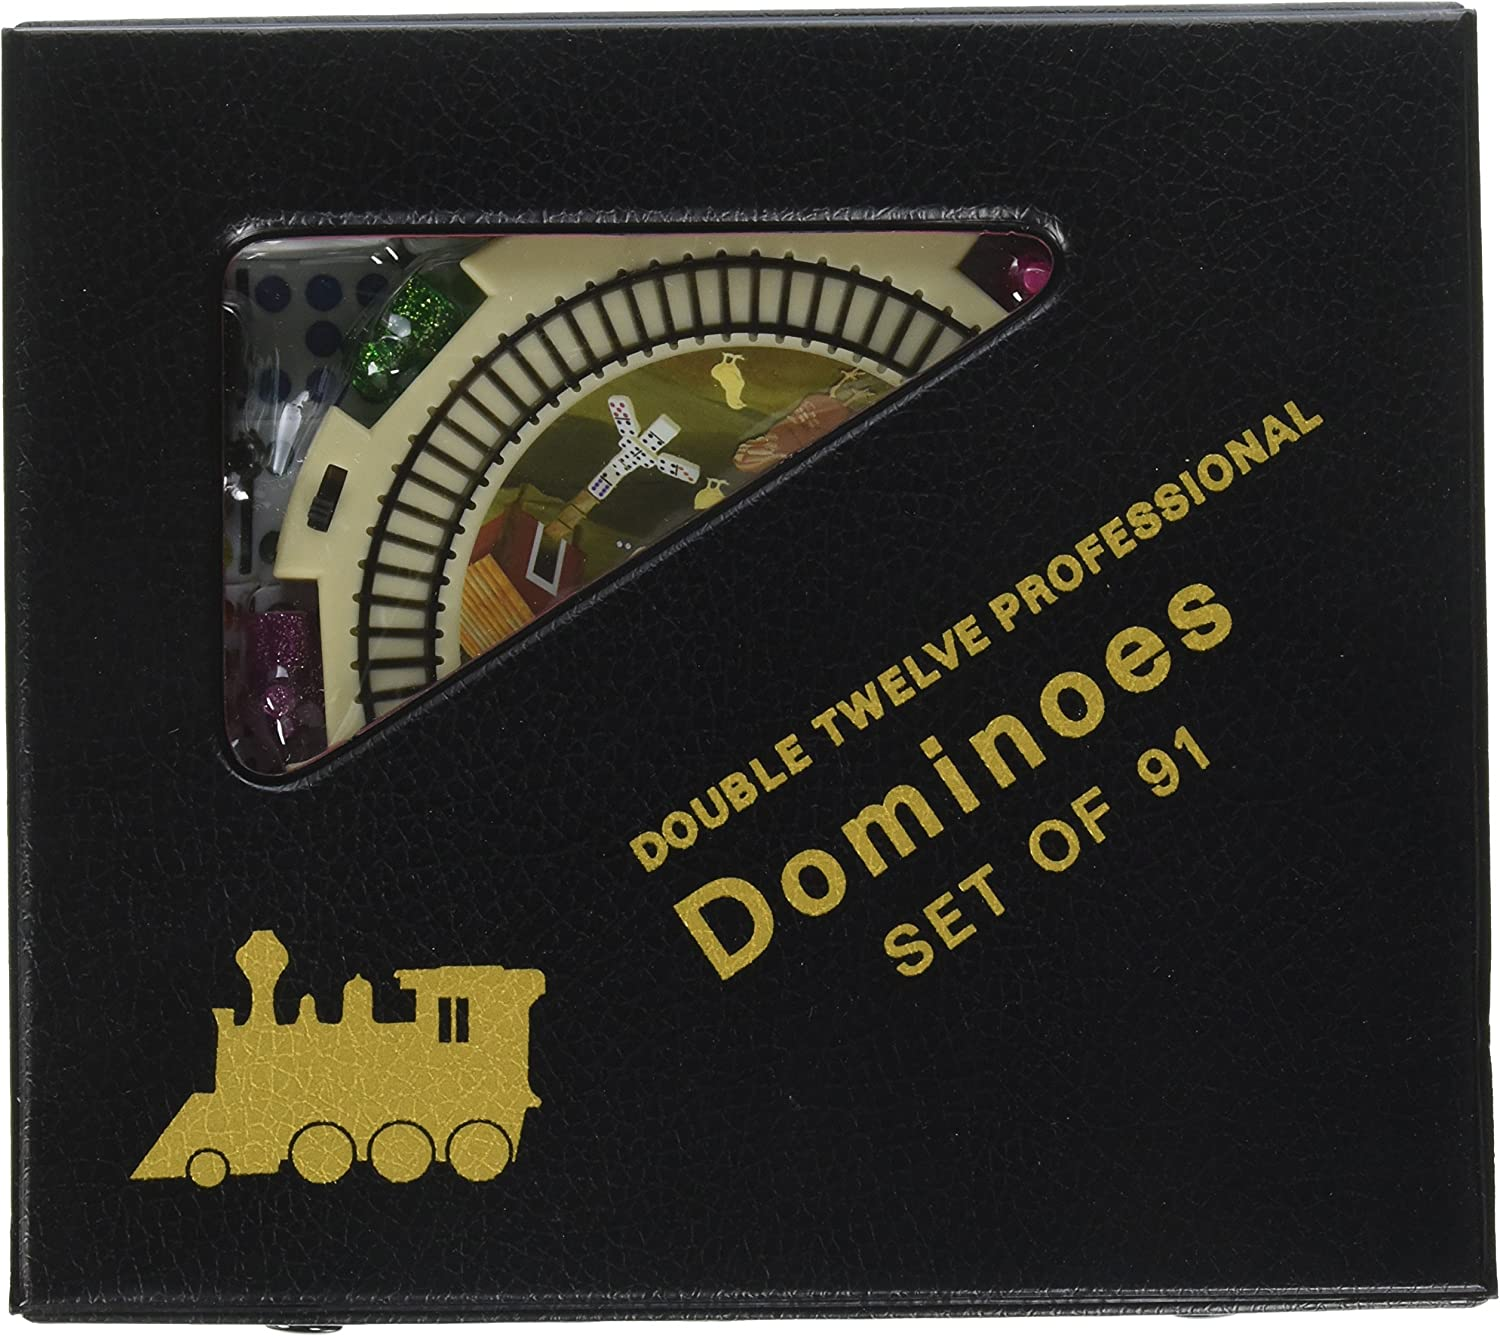 CHH New Double 12 Mexican Train Dominoes Set w Dots